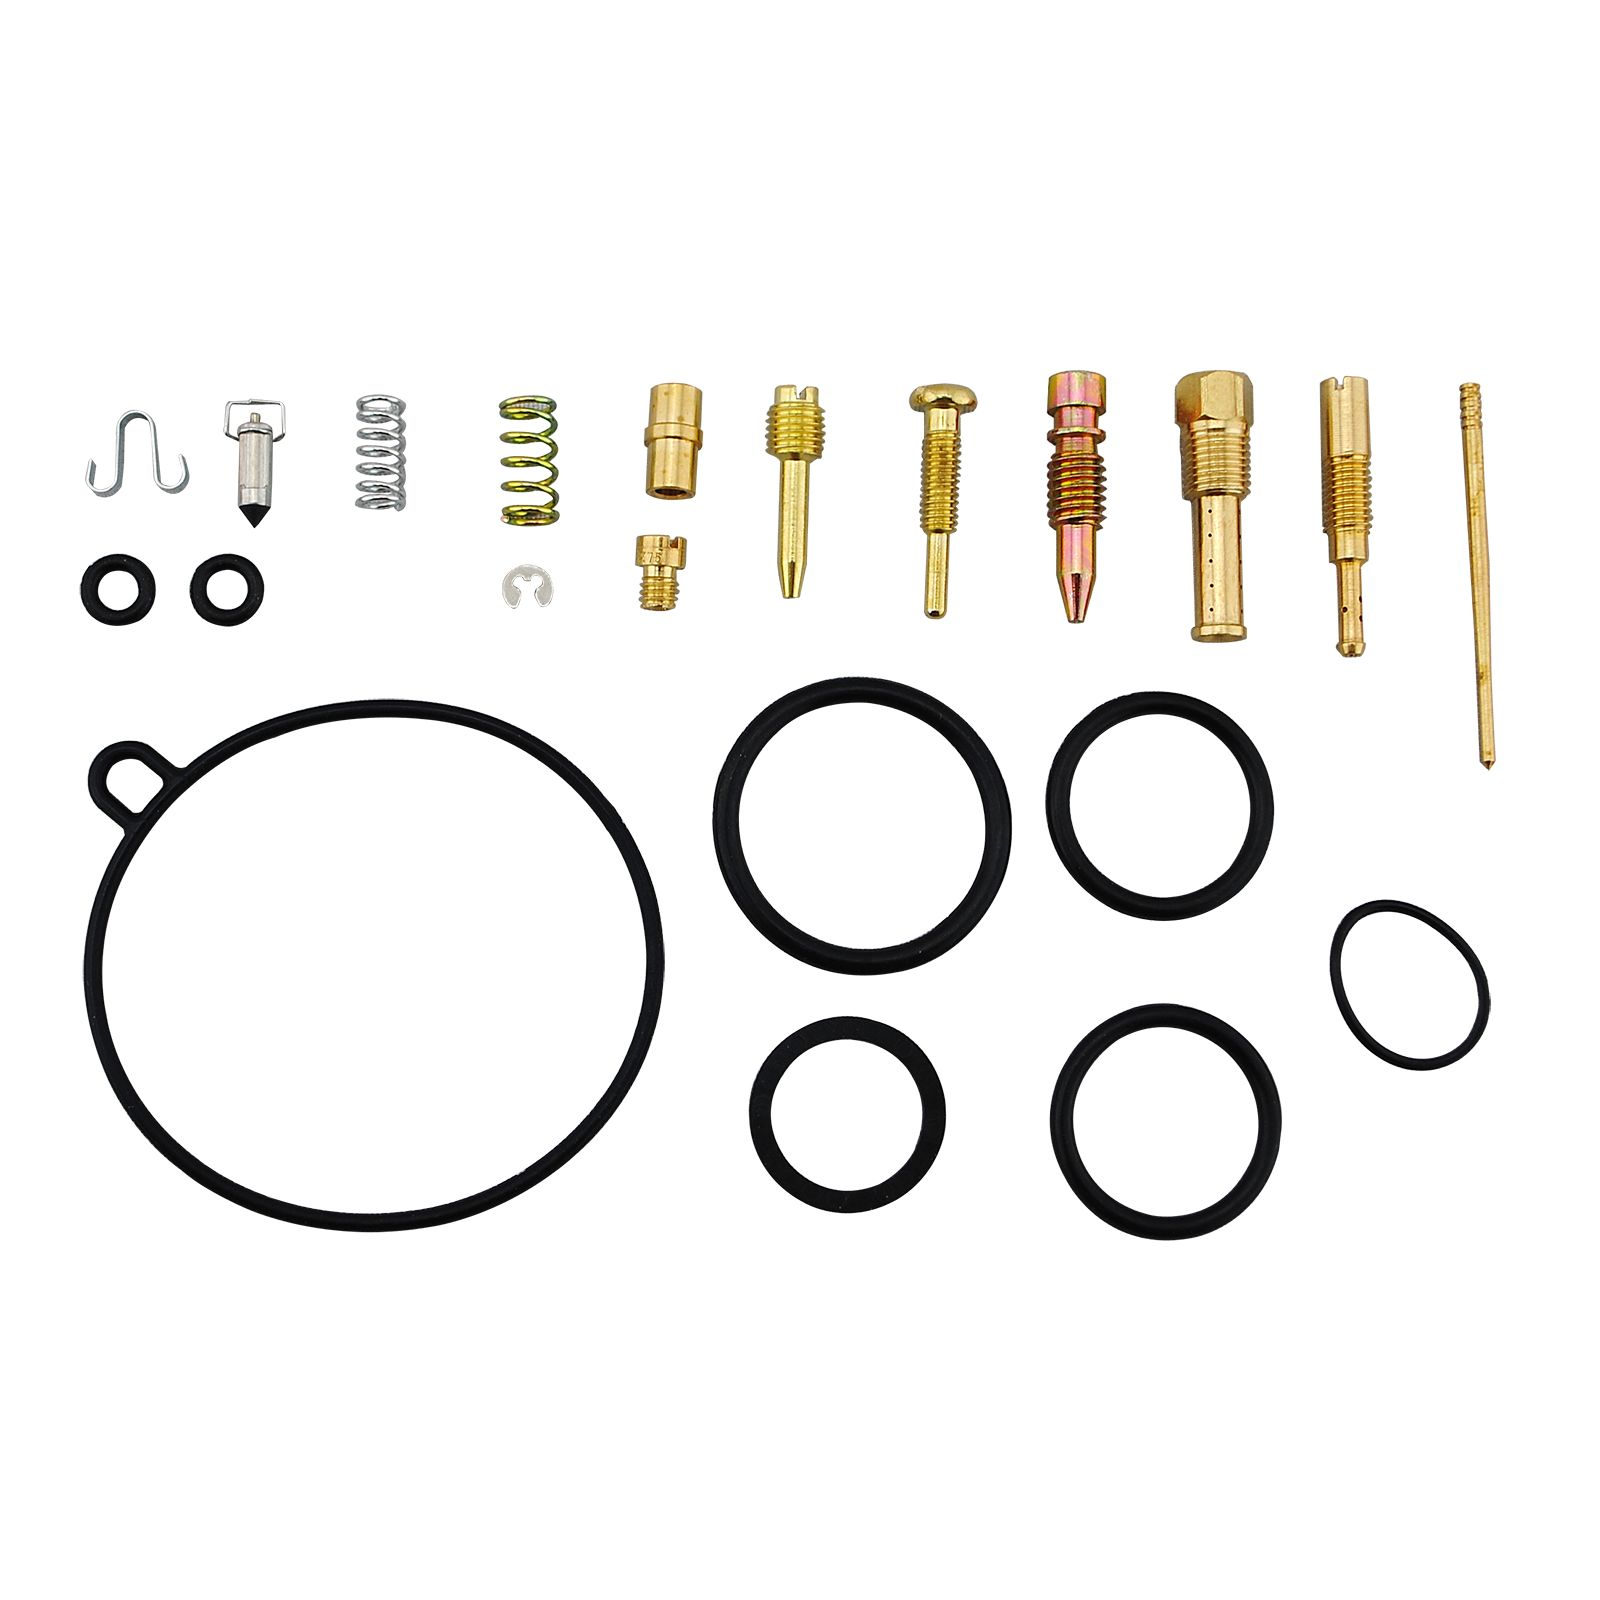 Marvelous Rebuild Kit Auto Electrical Wiring Diagram Wiring Cloud Waroletkolfr09Org